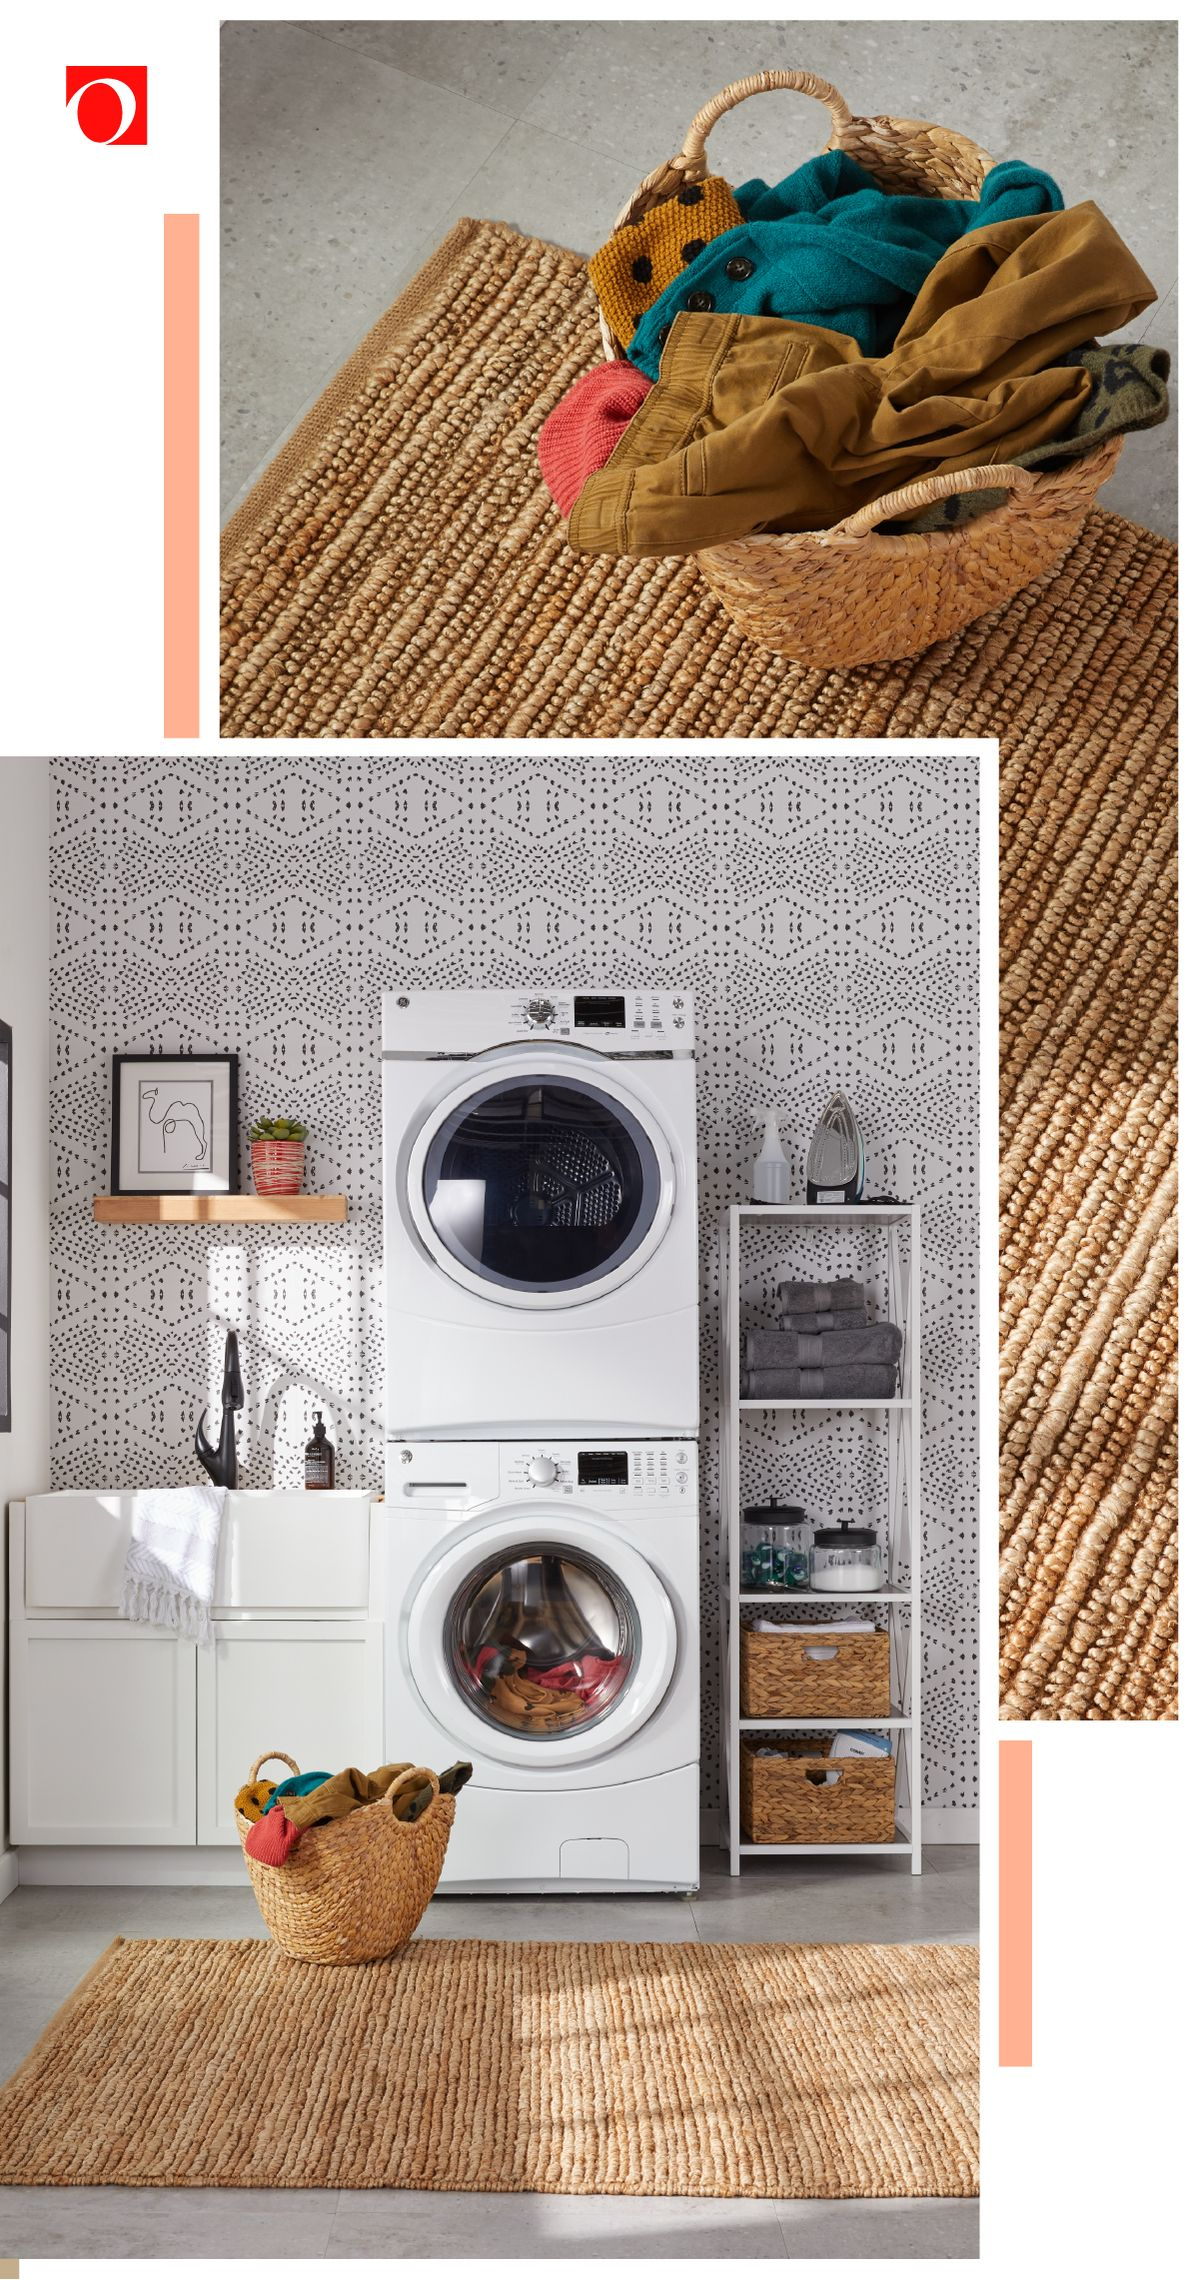 Give your laundry room the refresh it deserves with Overstock's amazing deals on laundry essentials, where quality costs less. #laundry #laundryroom #washeranddryer #clothing #clothescare #homedecor #laundryroomdecor #homedecorating #home #homegoods #accentdecor #mudroom #laundryspace #washingclothes #homeappliances #overstock